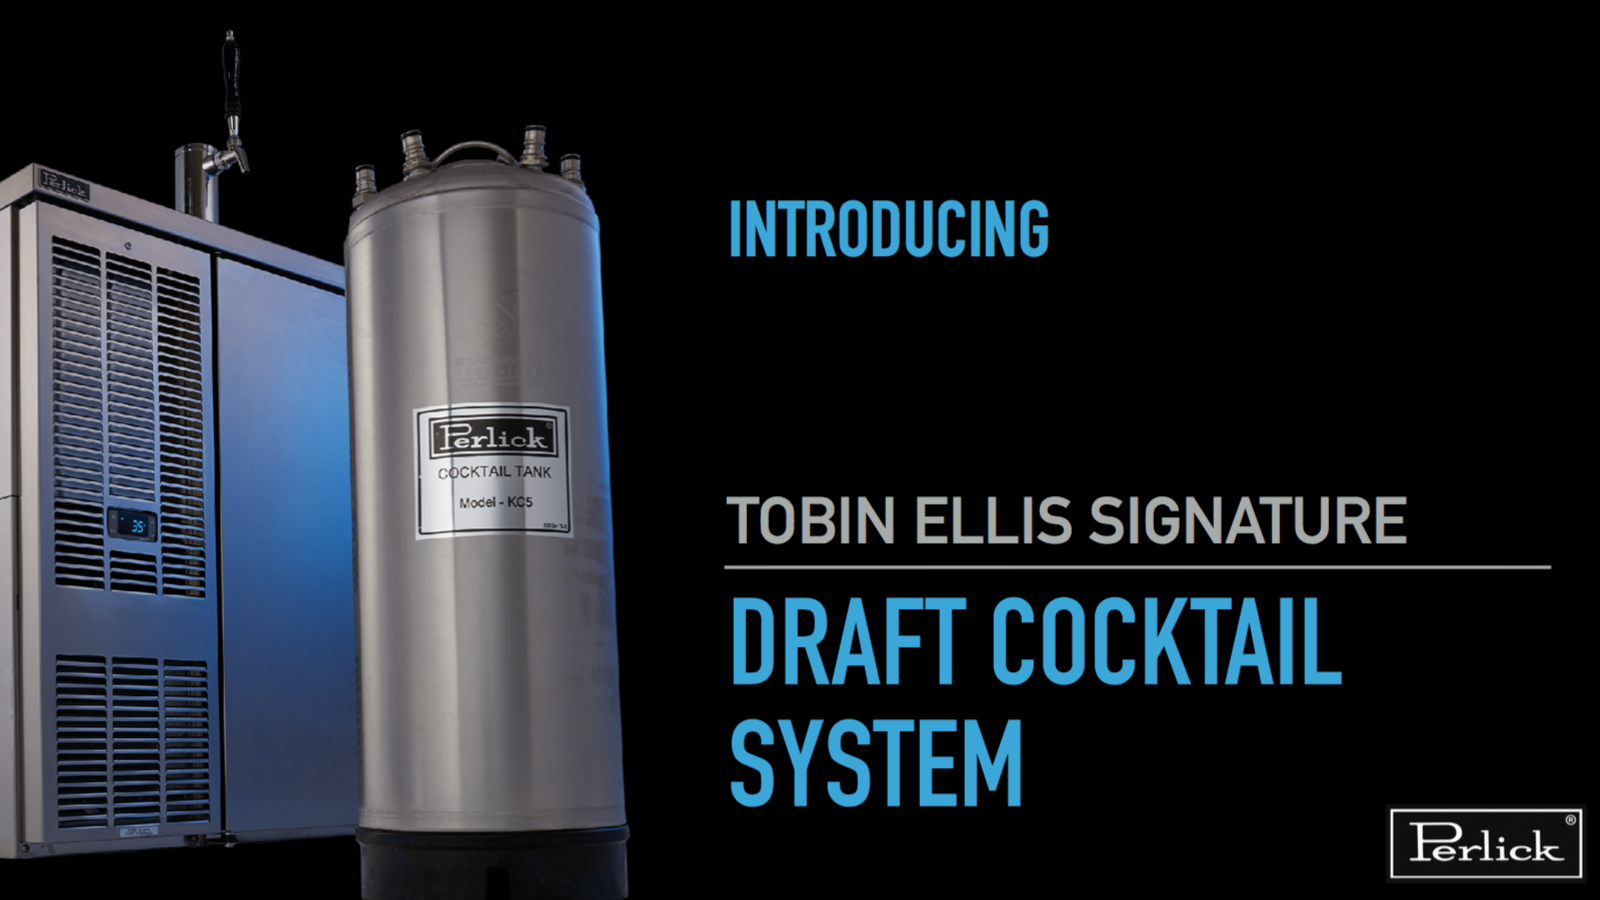 Intro to the Tobin Ellis Signature Draft Cocktail System from Perlick